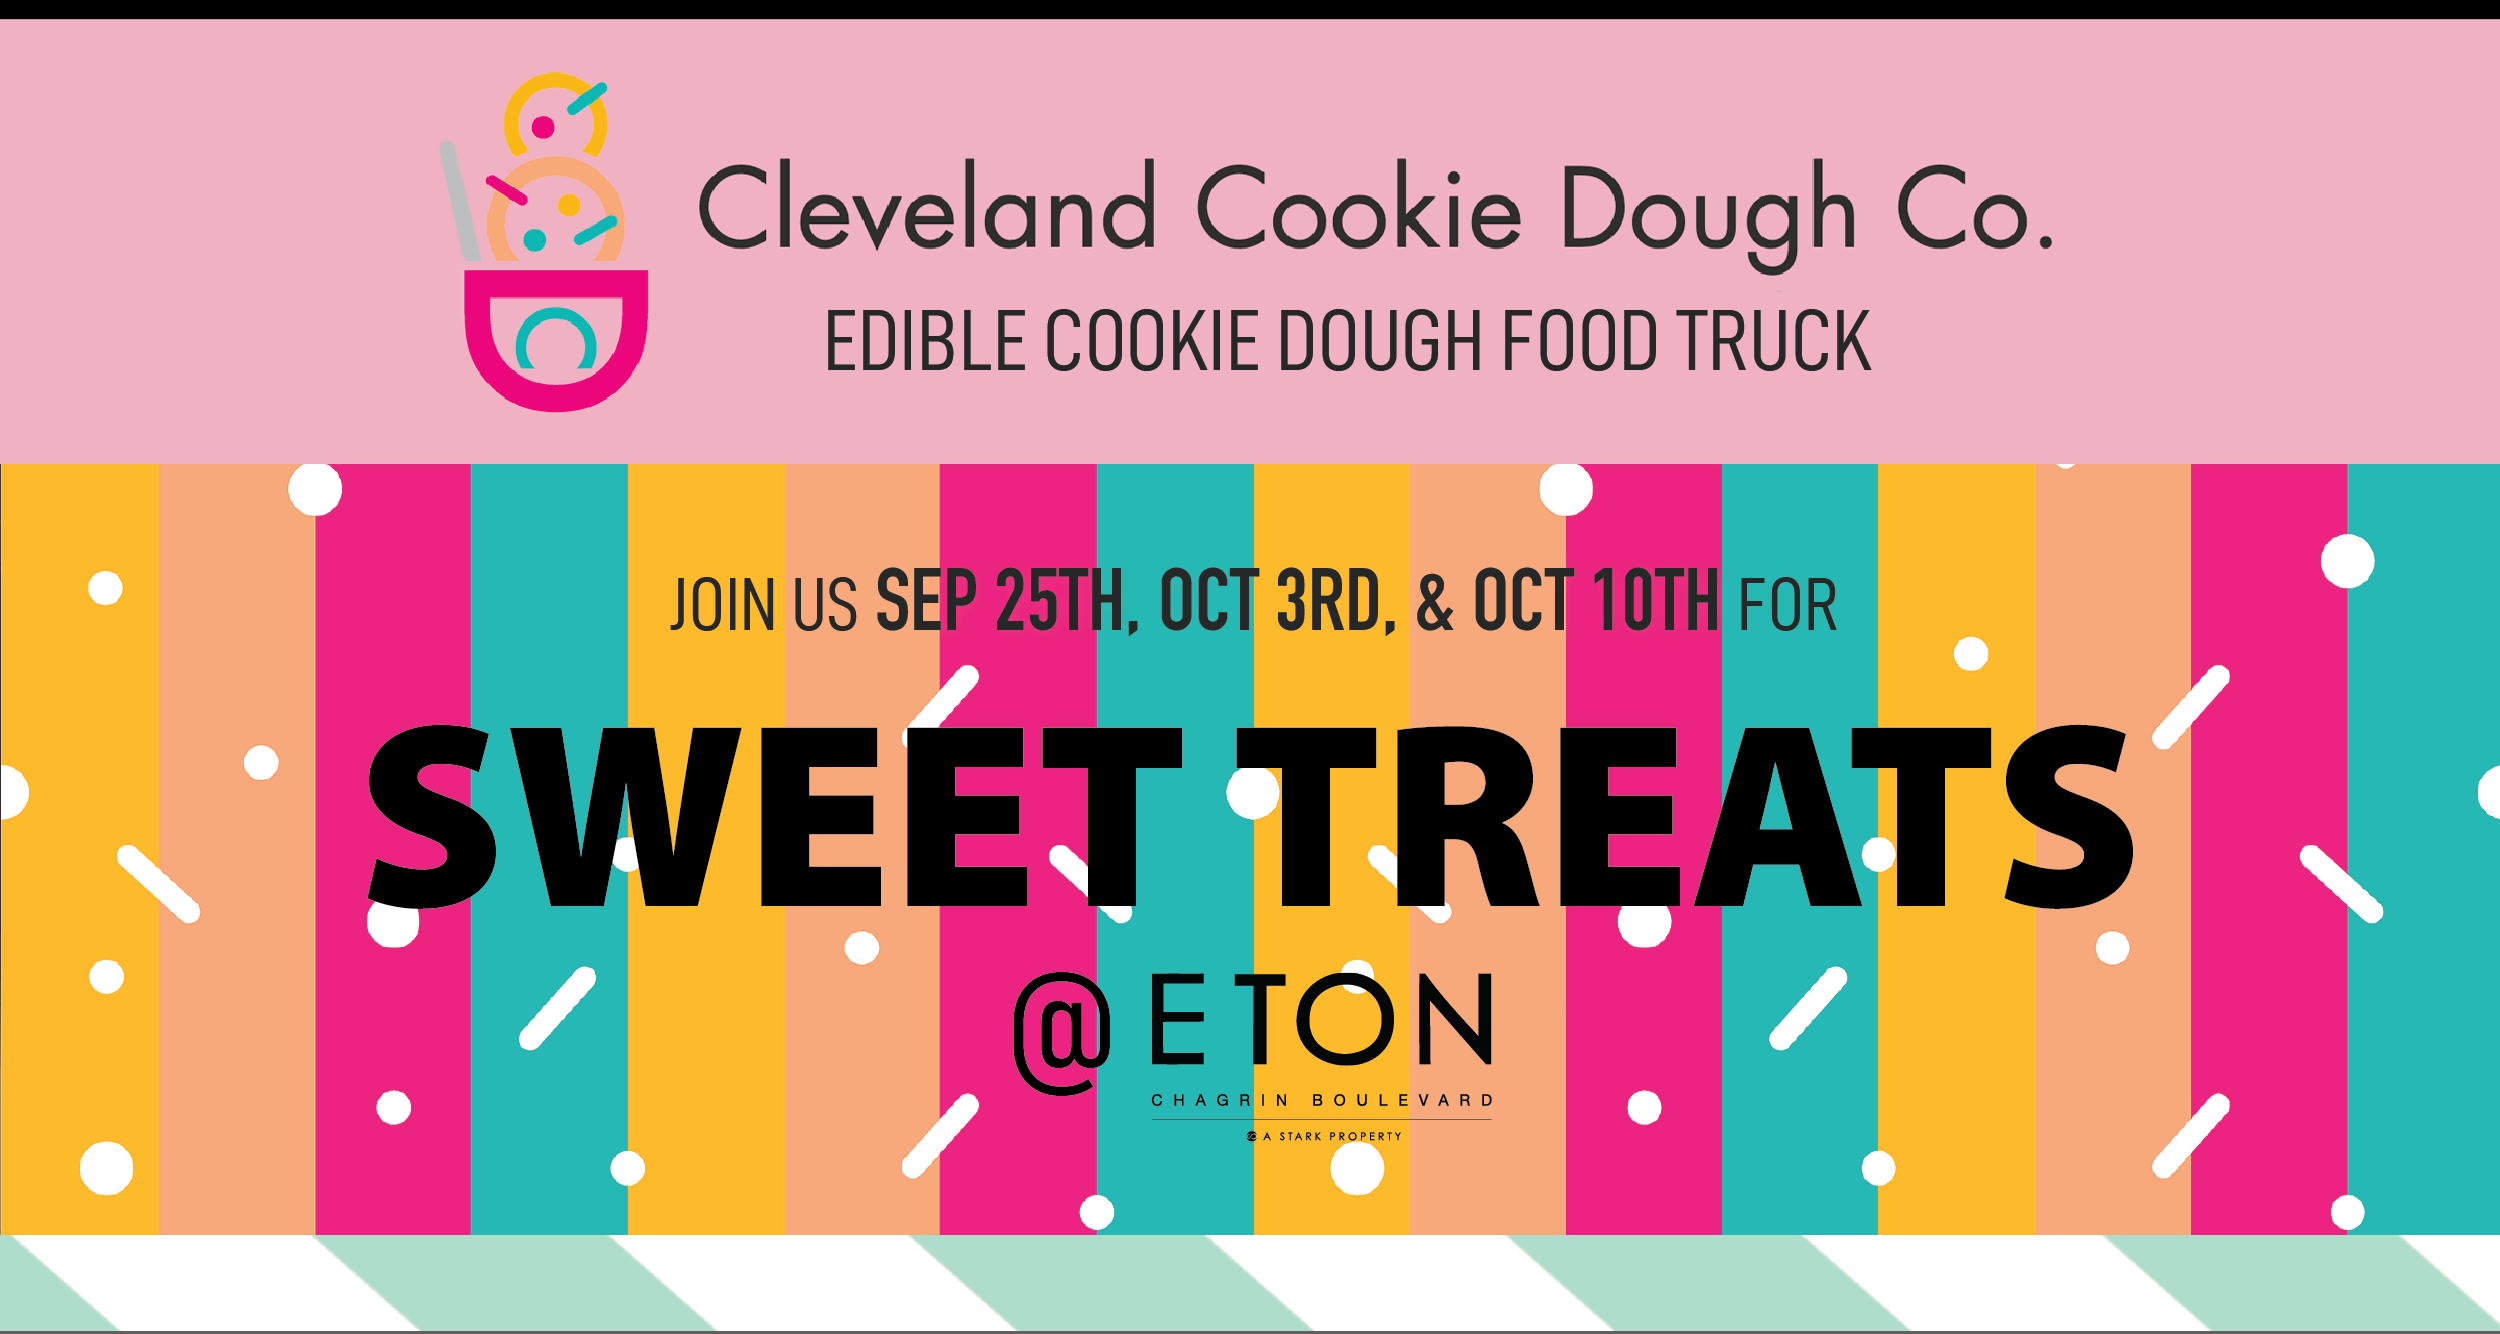 Cleveland Cookie Dough Co. Pop-up